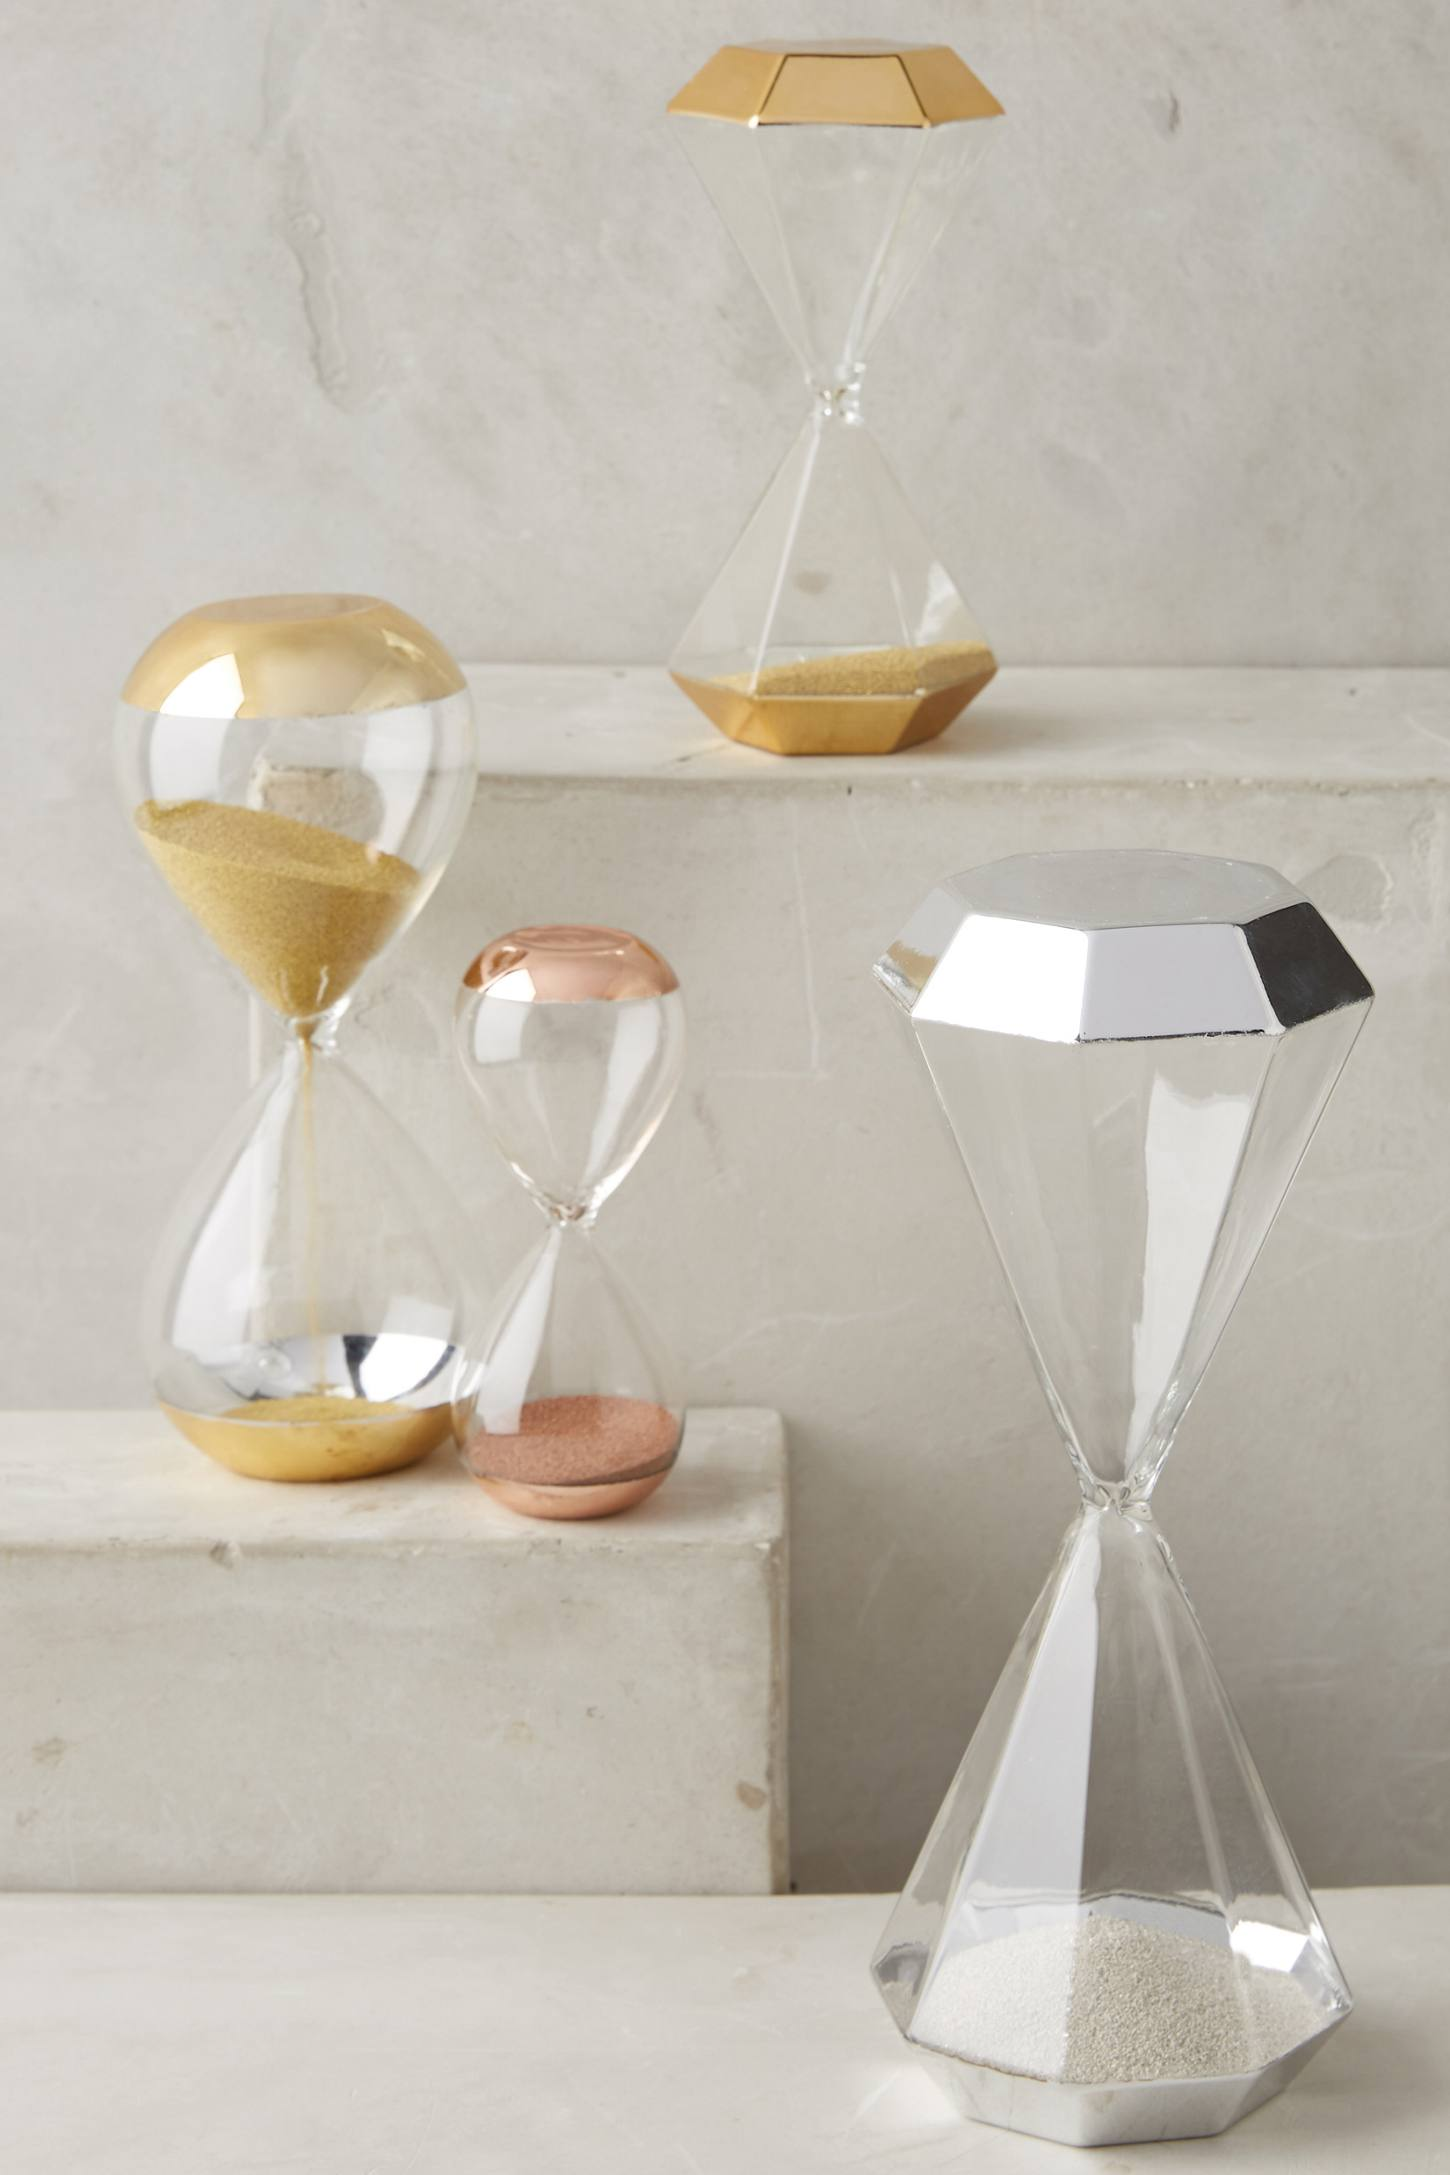 Hourglasses from Anthropologie